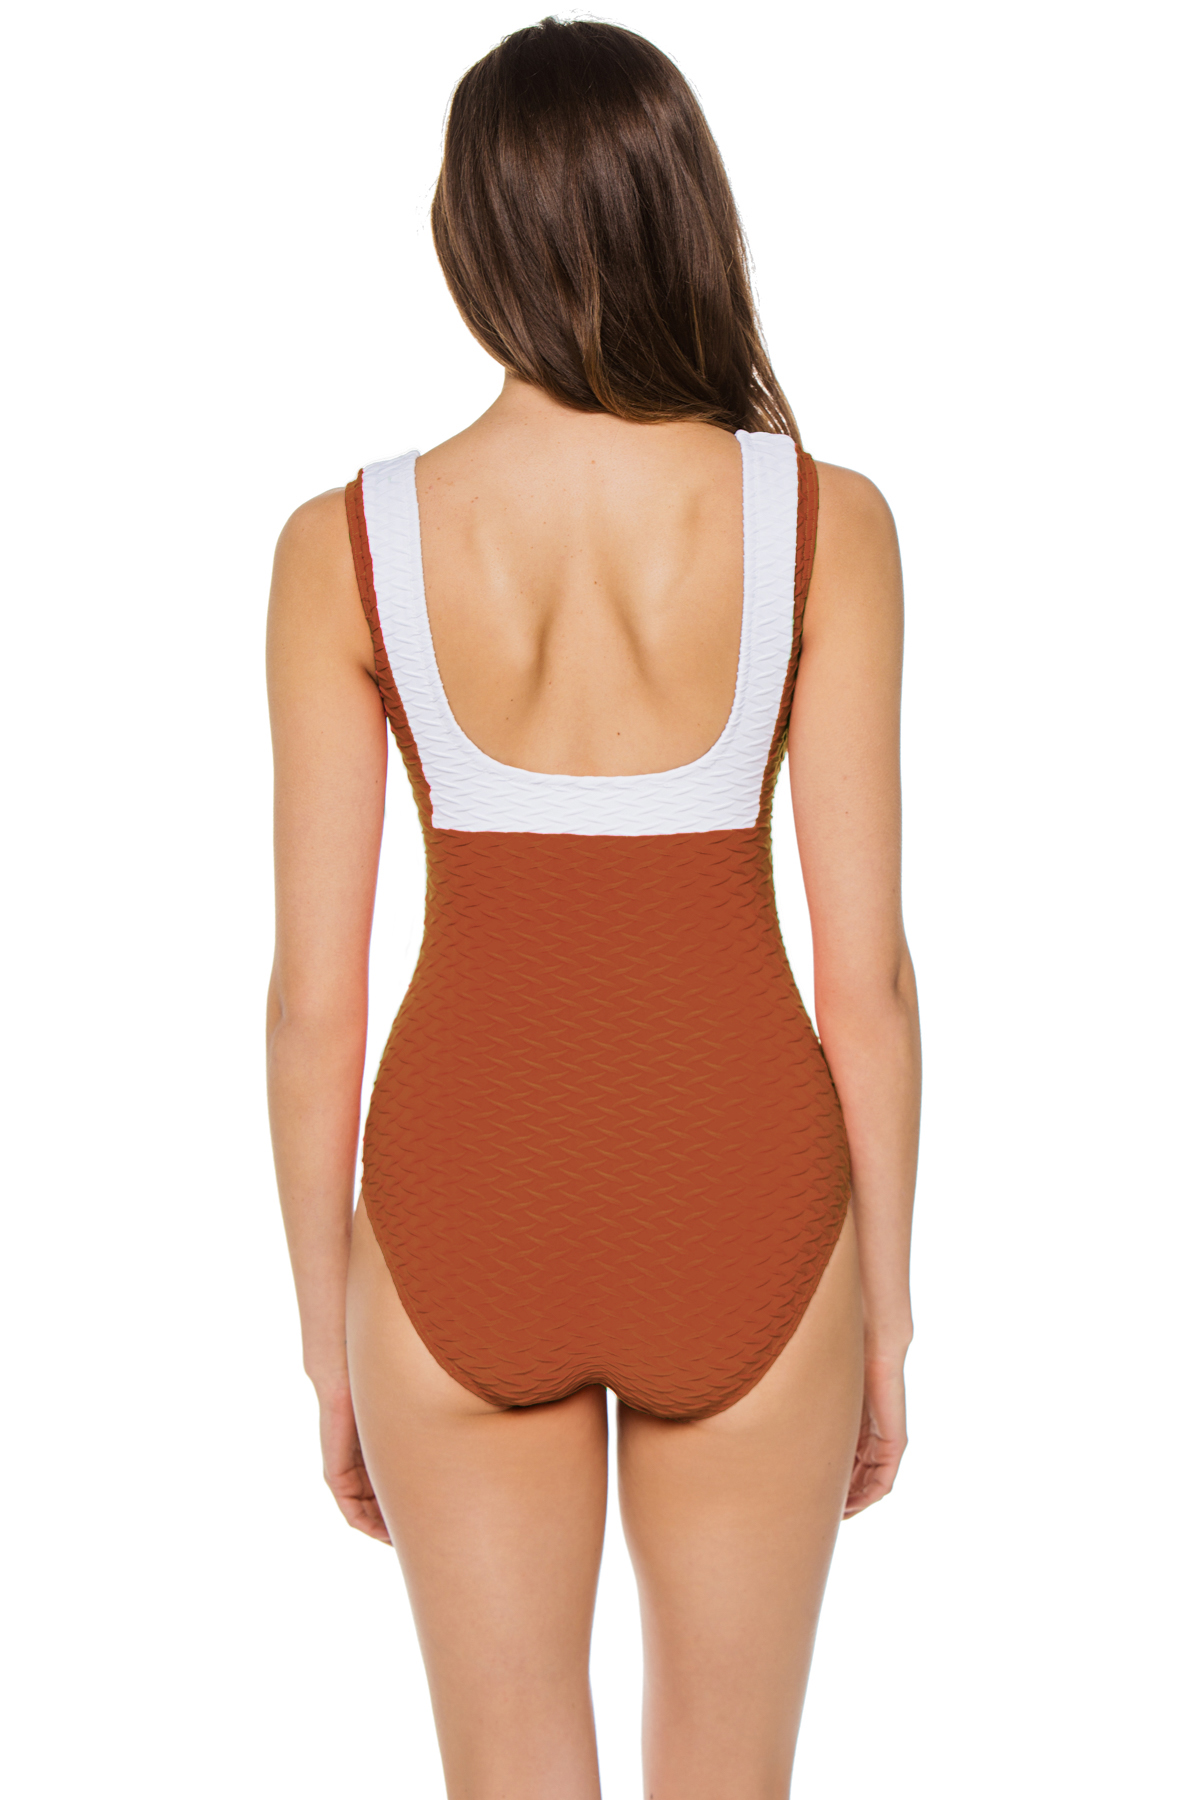 Textured Over The Shoulder One Piece Swimsuit - Amber 2